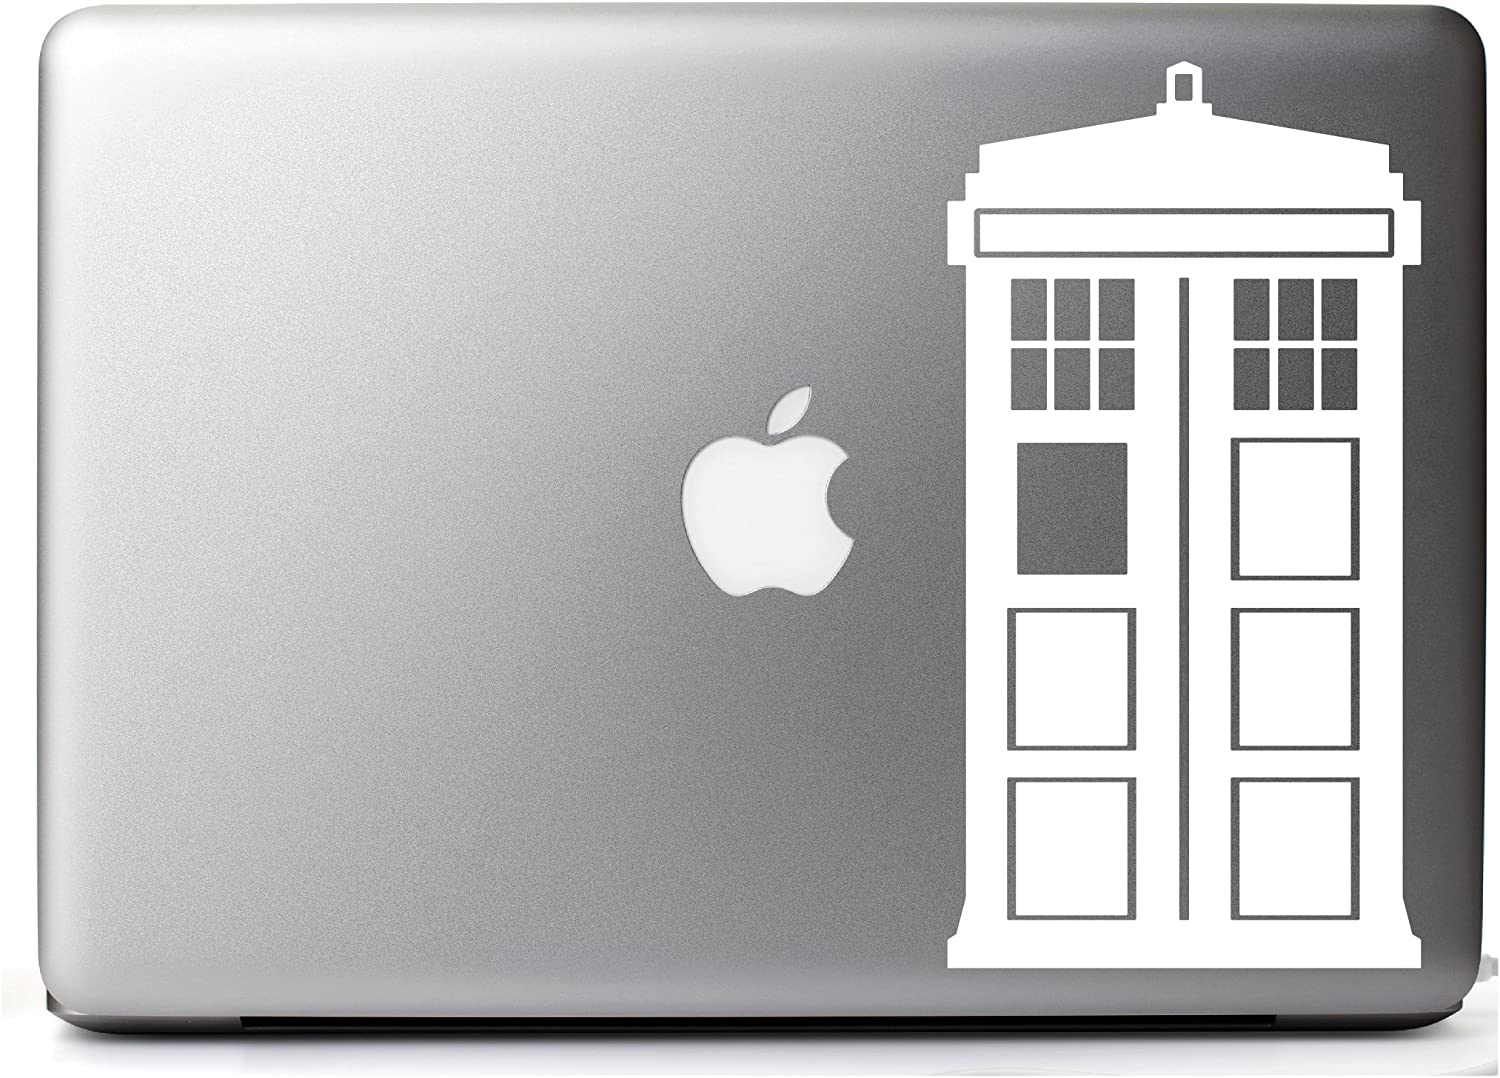 Yoonek Graphics Doctor Who Tardis Decal Sticker 531 6, White